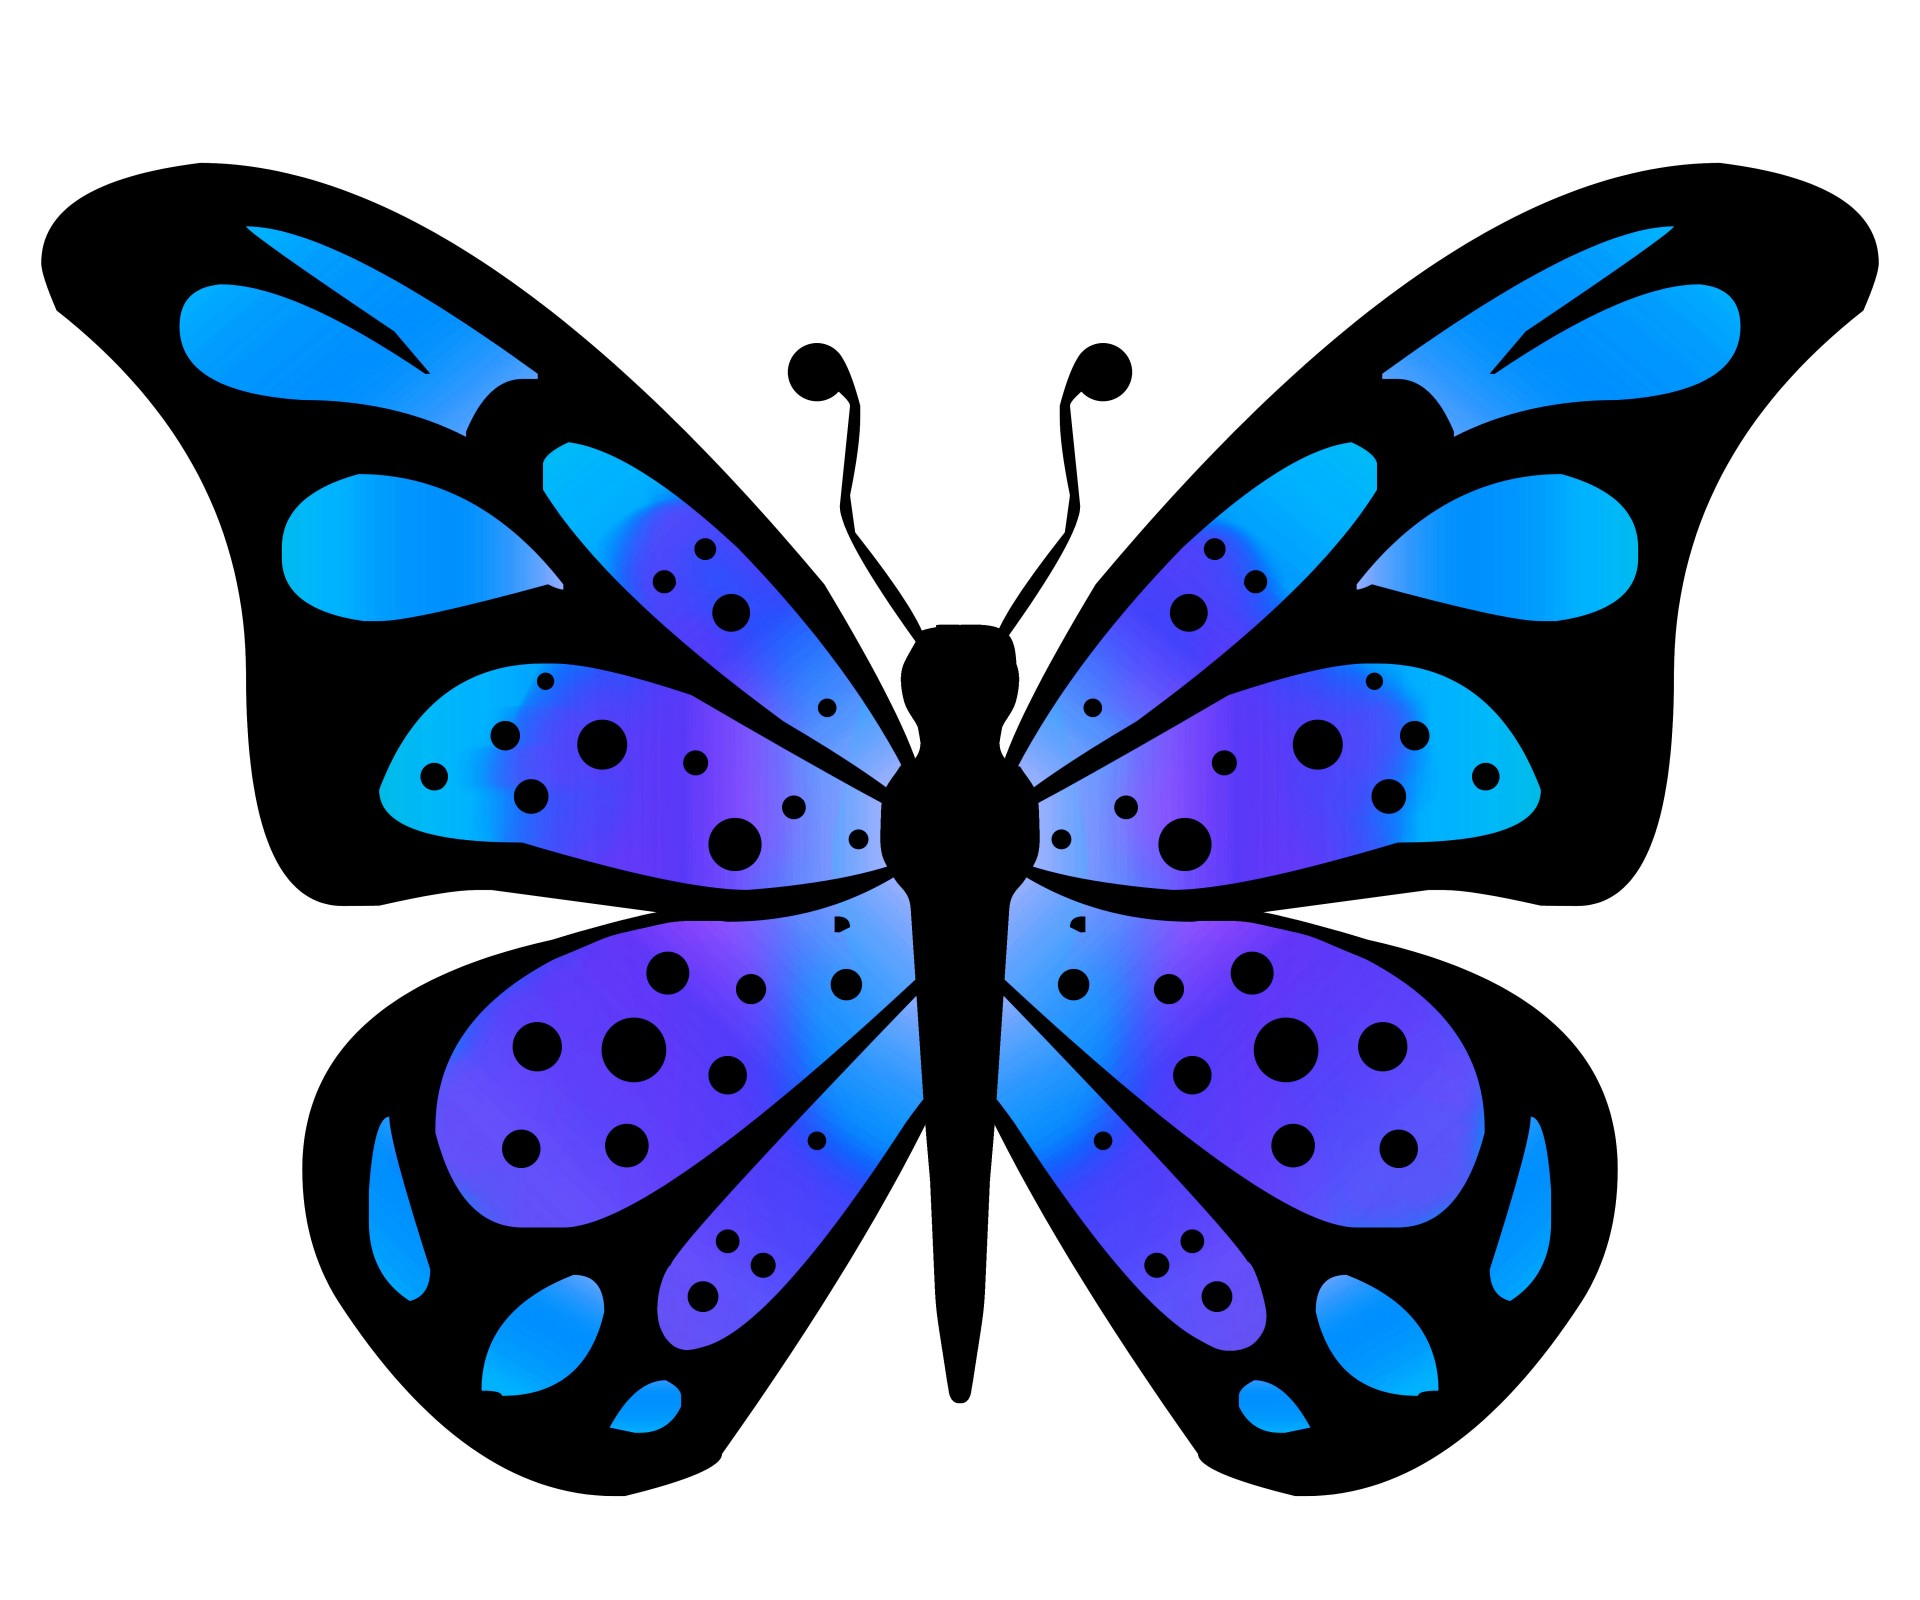 Clip art butterfly. Free clipart download best